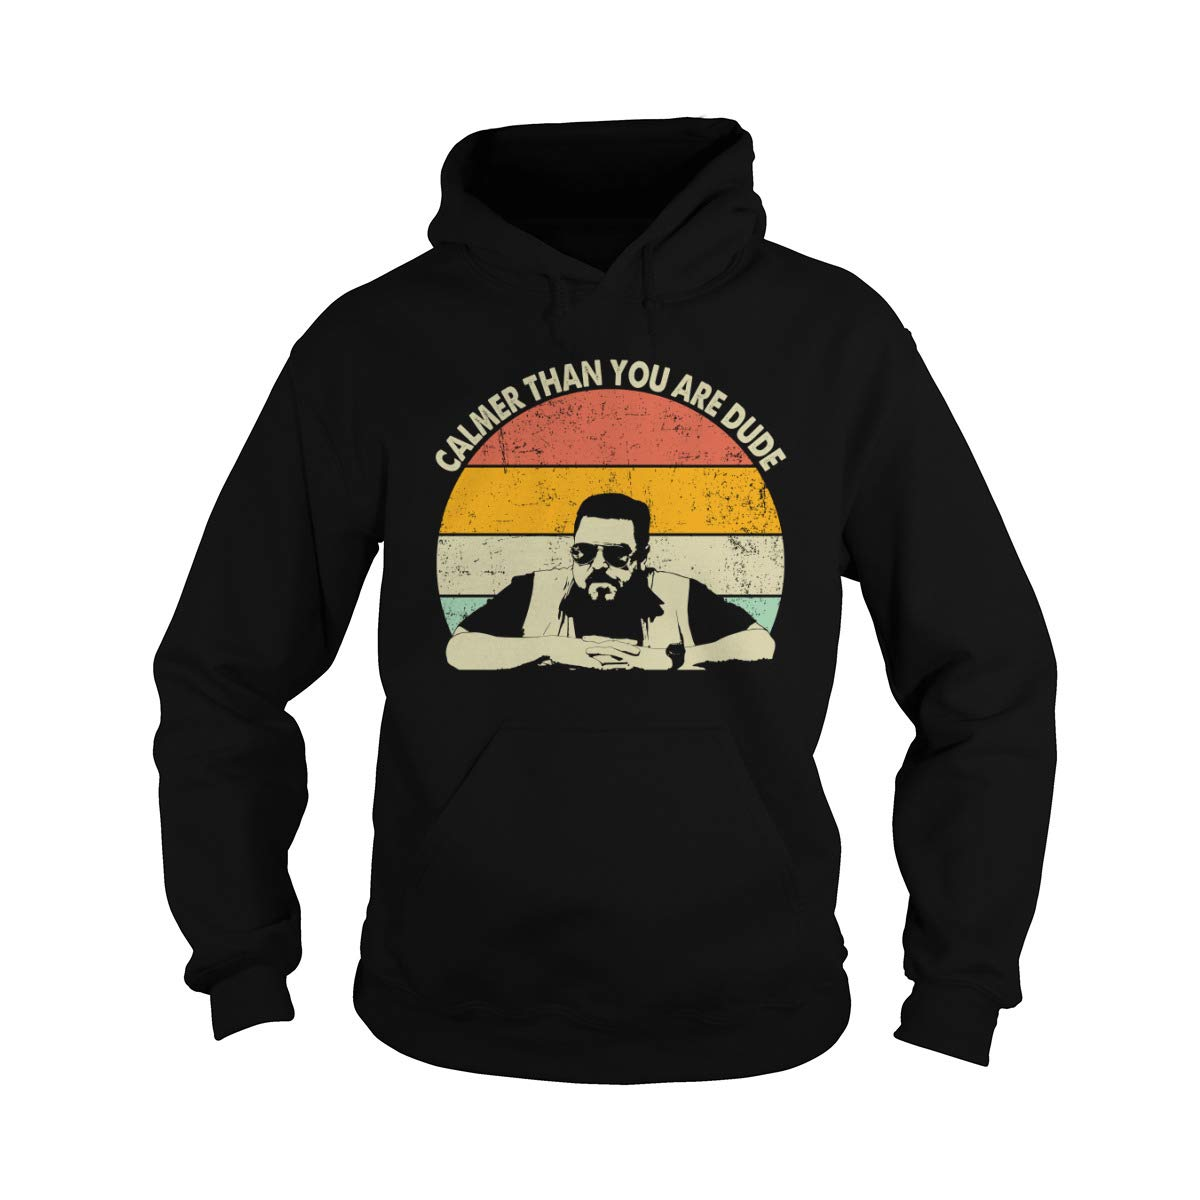 Calmer Than You are Dude Vintage Adult Hooded Sweatshirt